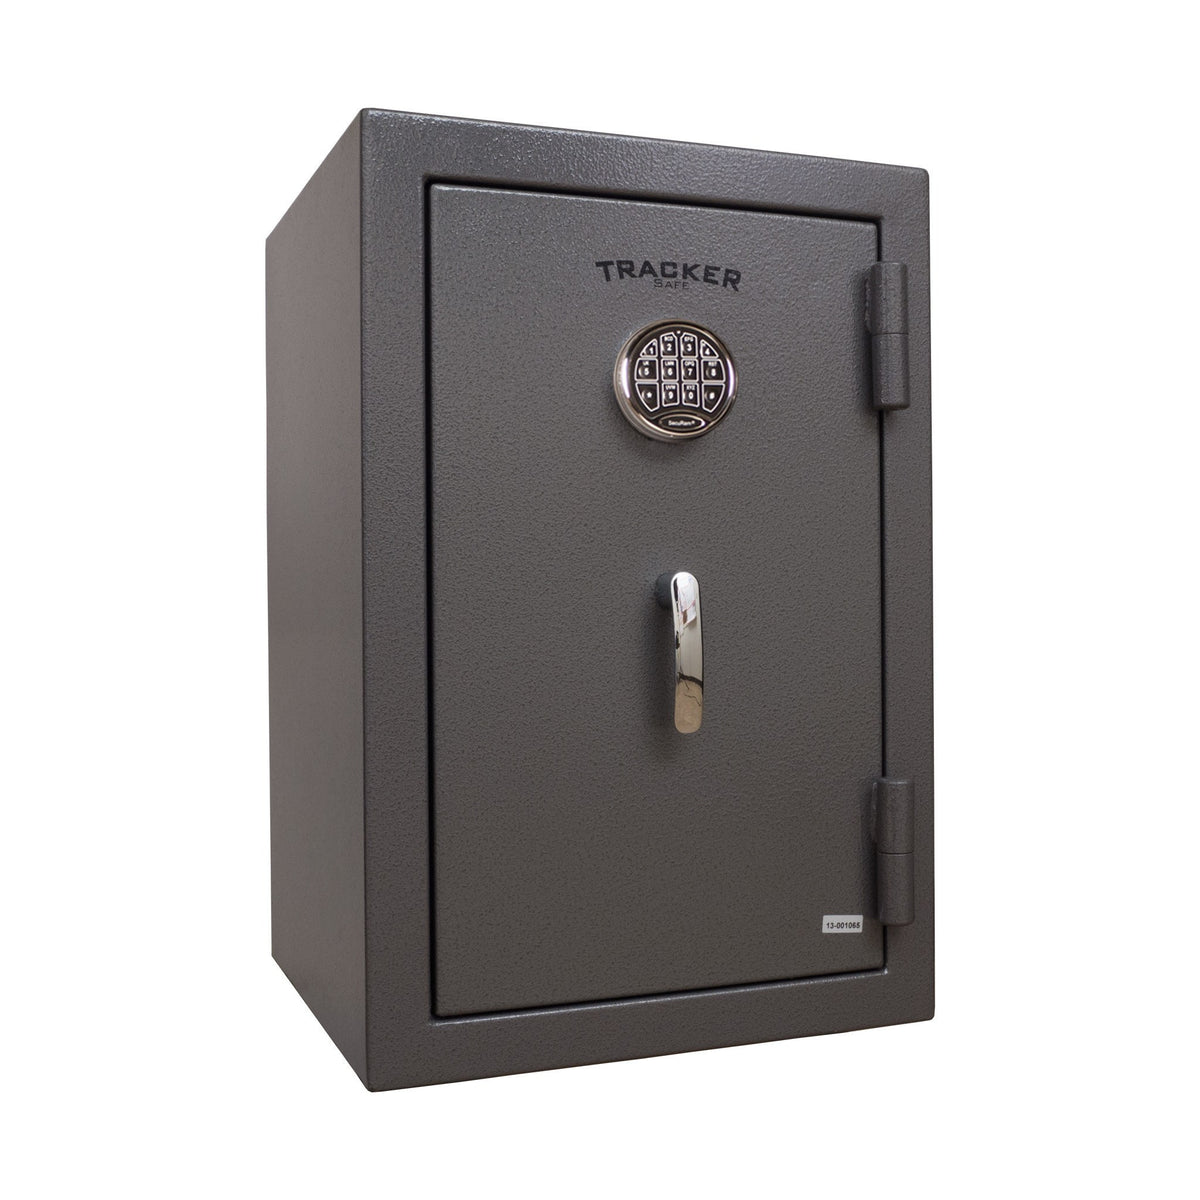 Tracker Safe HS30 Home Security Safe